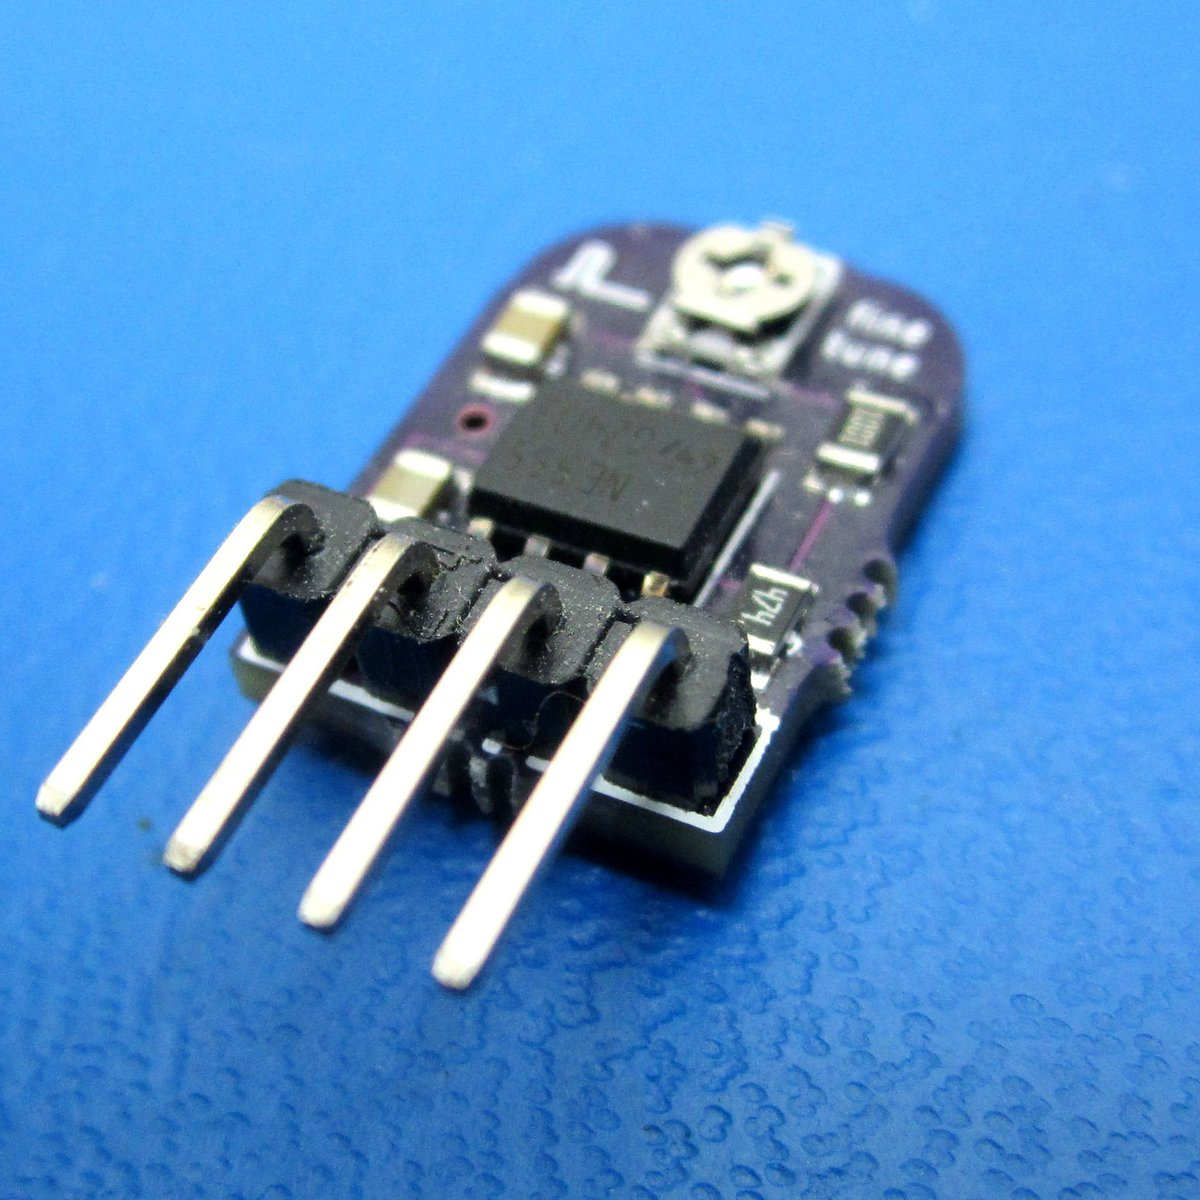 Tymkrs 555 Vco From The Toymakers On Tindie Circuit With Logarithmic Characteristic 555circuit